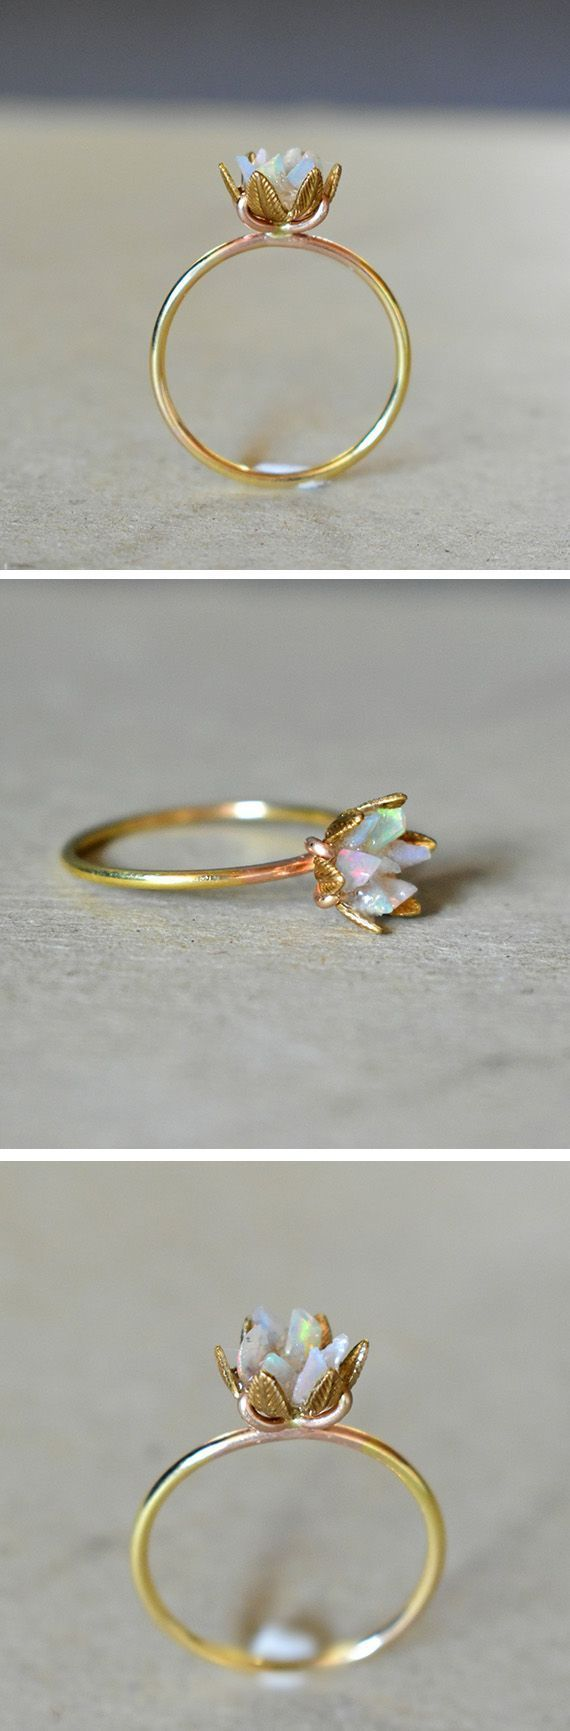 Pieces of raw opal complement each other to this beautiful lotus ring